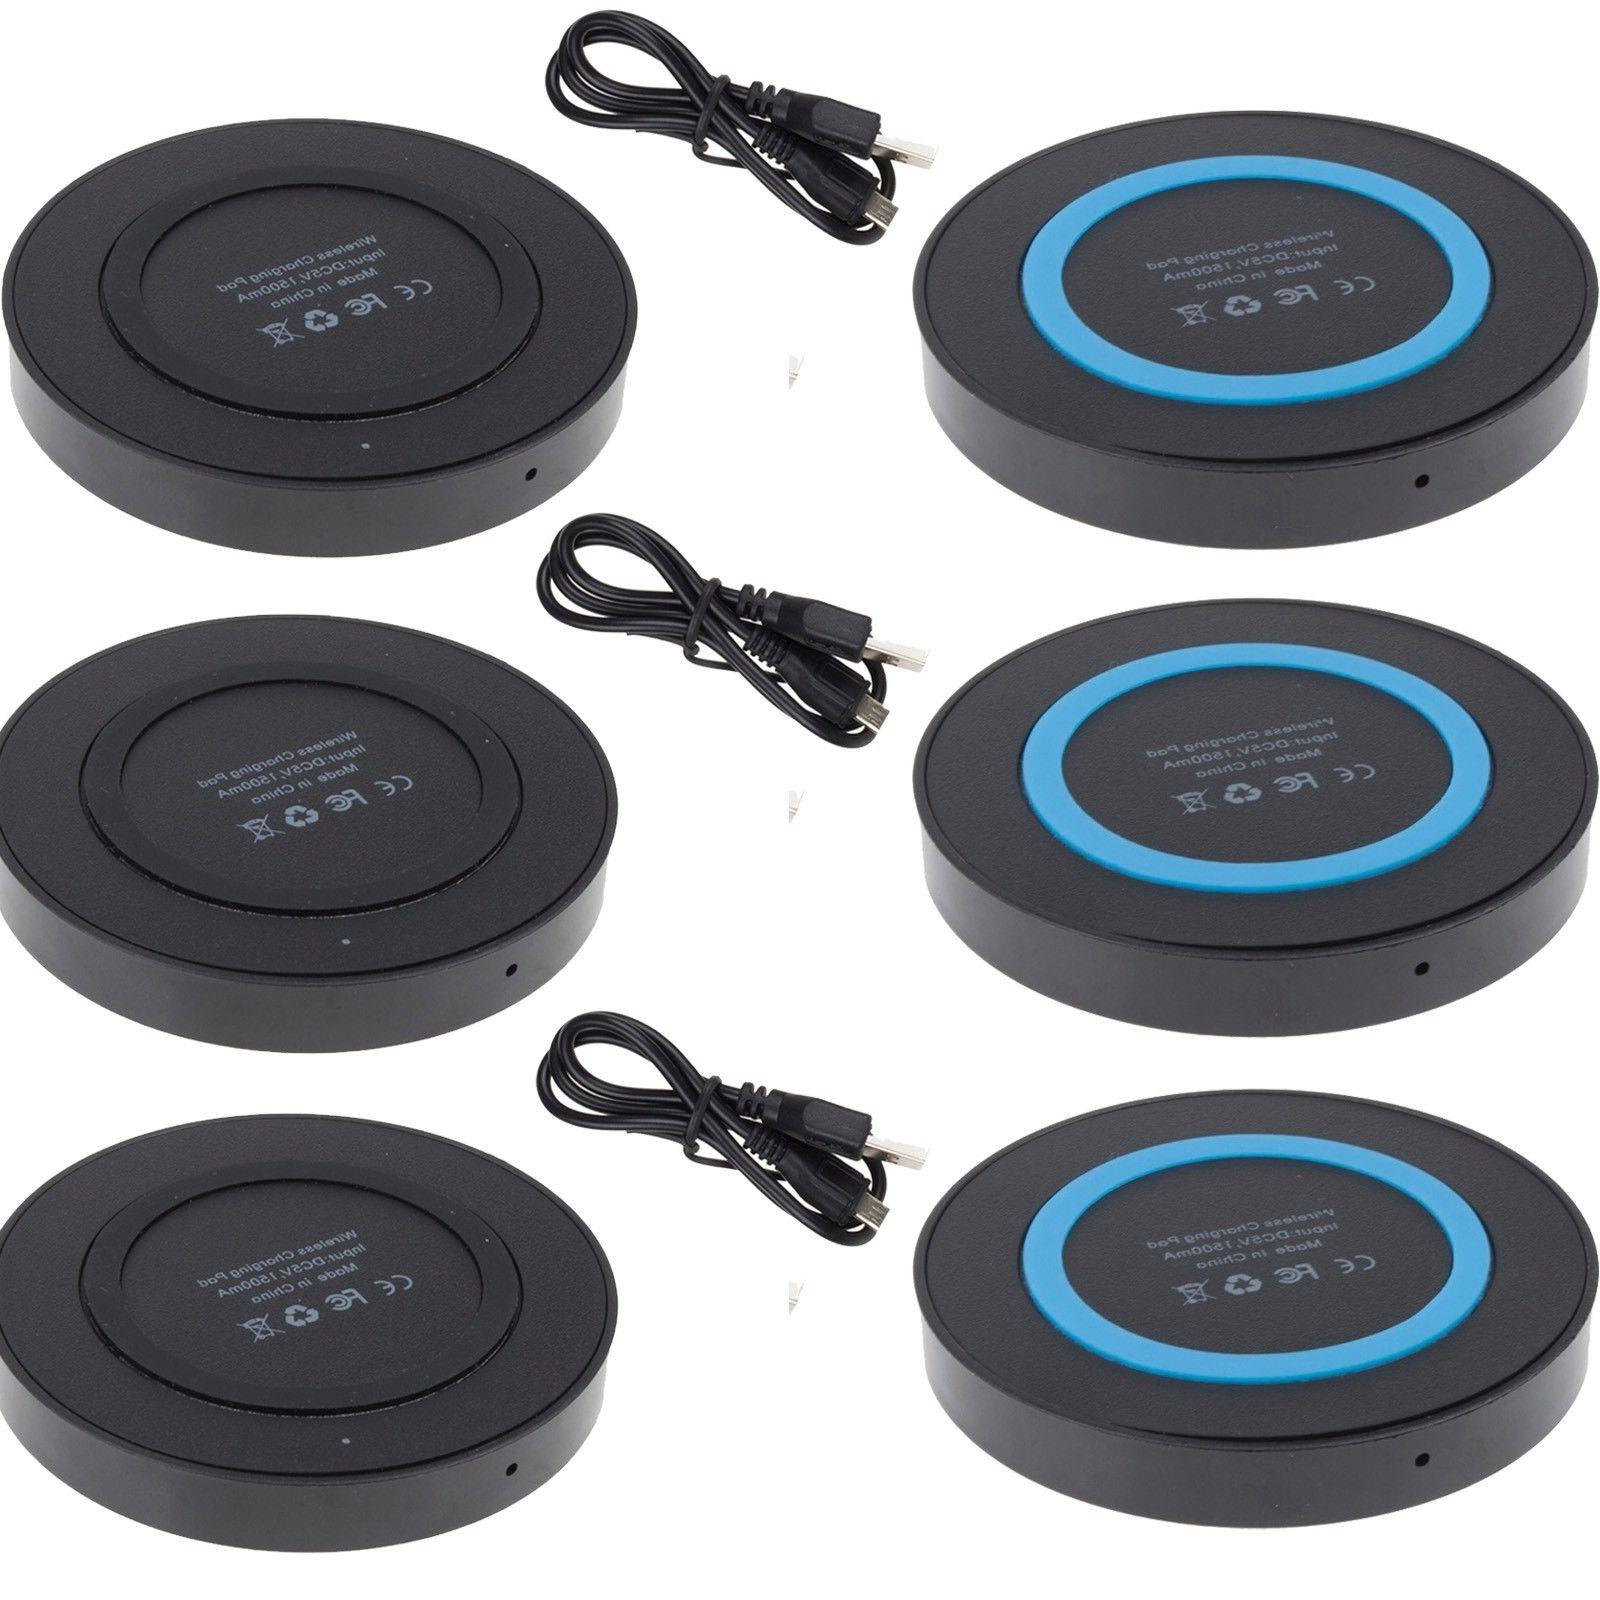 3Pack QI Wireless Charger Pad Adapter for iPhone 8 Plus  X L